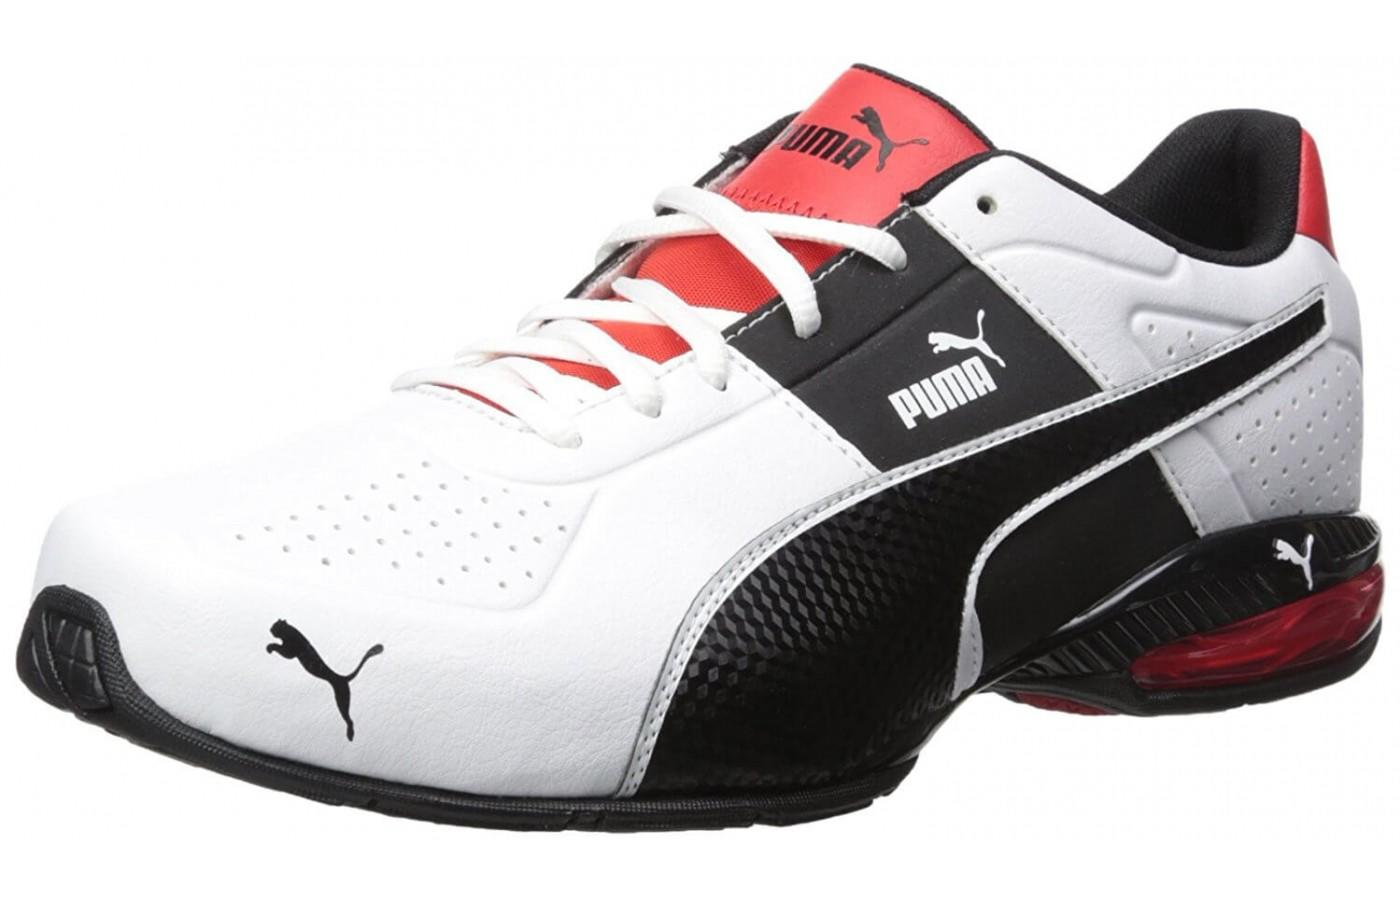 The Puma Cell Surin 2 is a cross training shoe